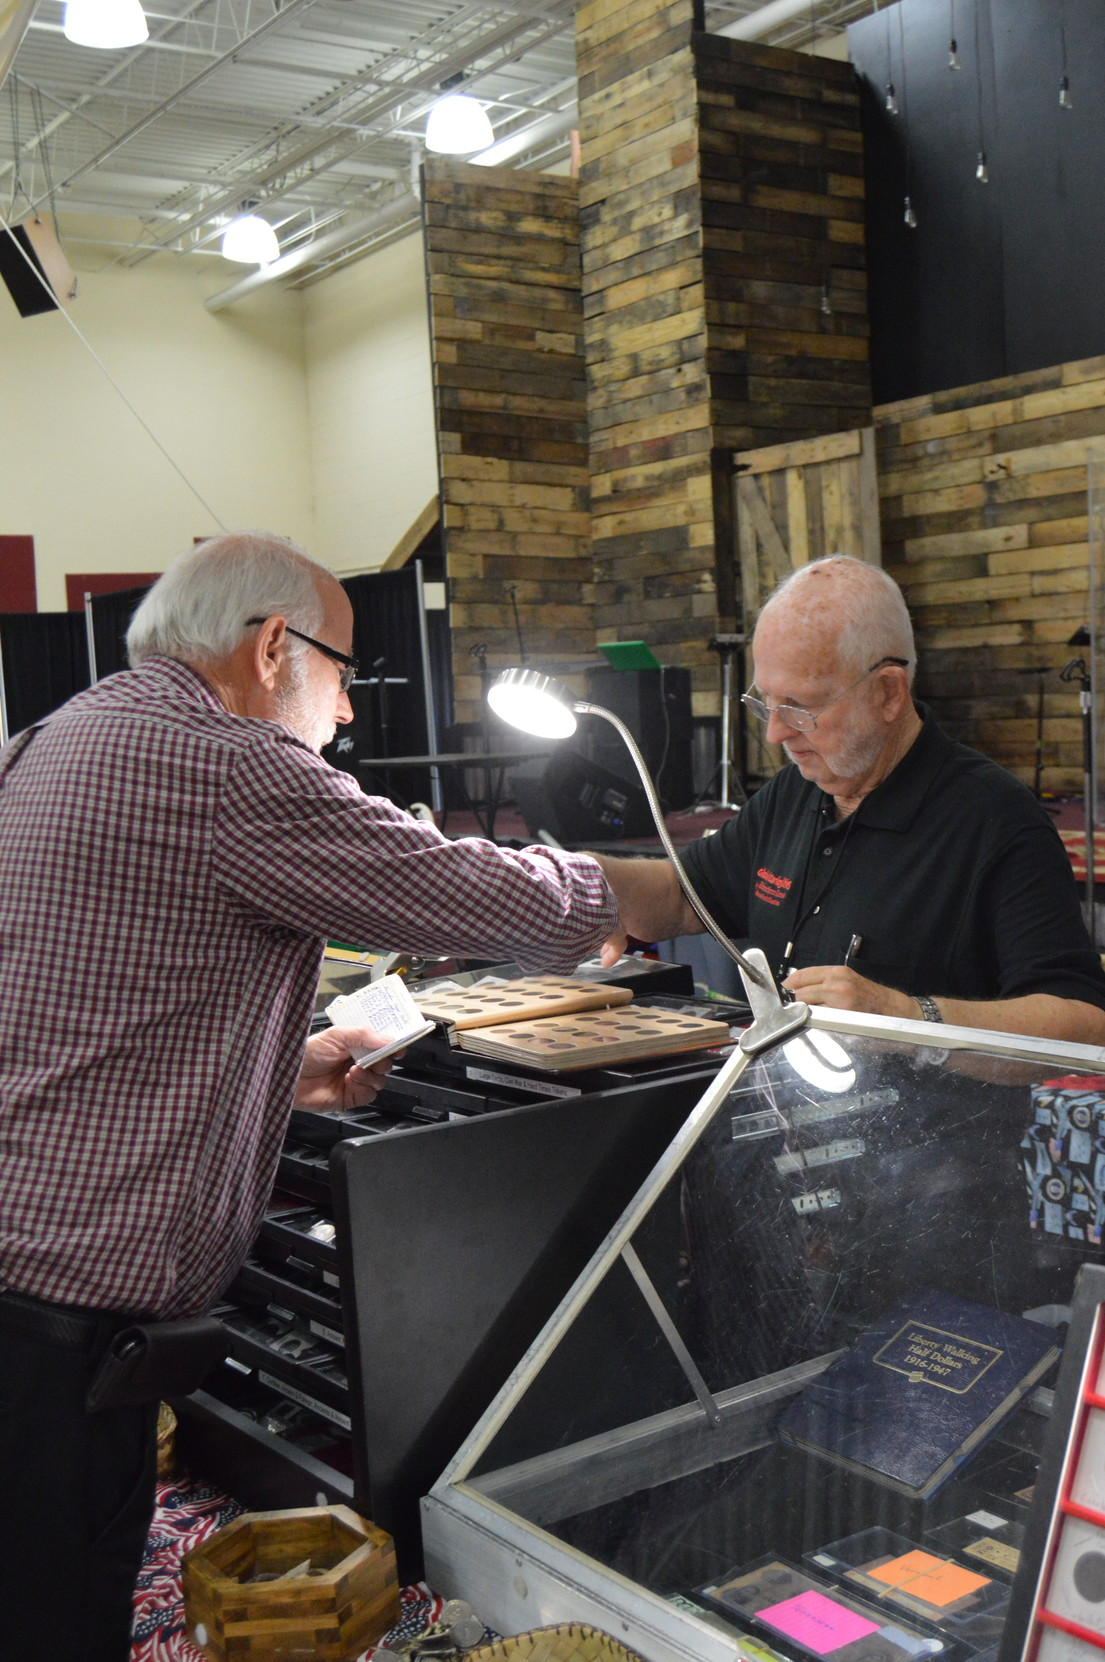 Don Cann, right, discusses his extensive coin collection with a visitor during the annual Sumter Coin Show on Saturday.